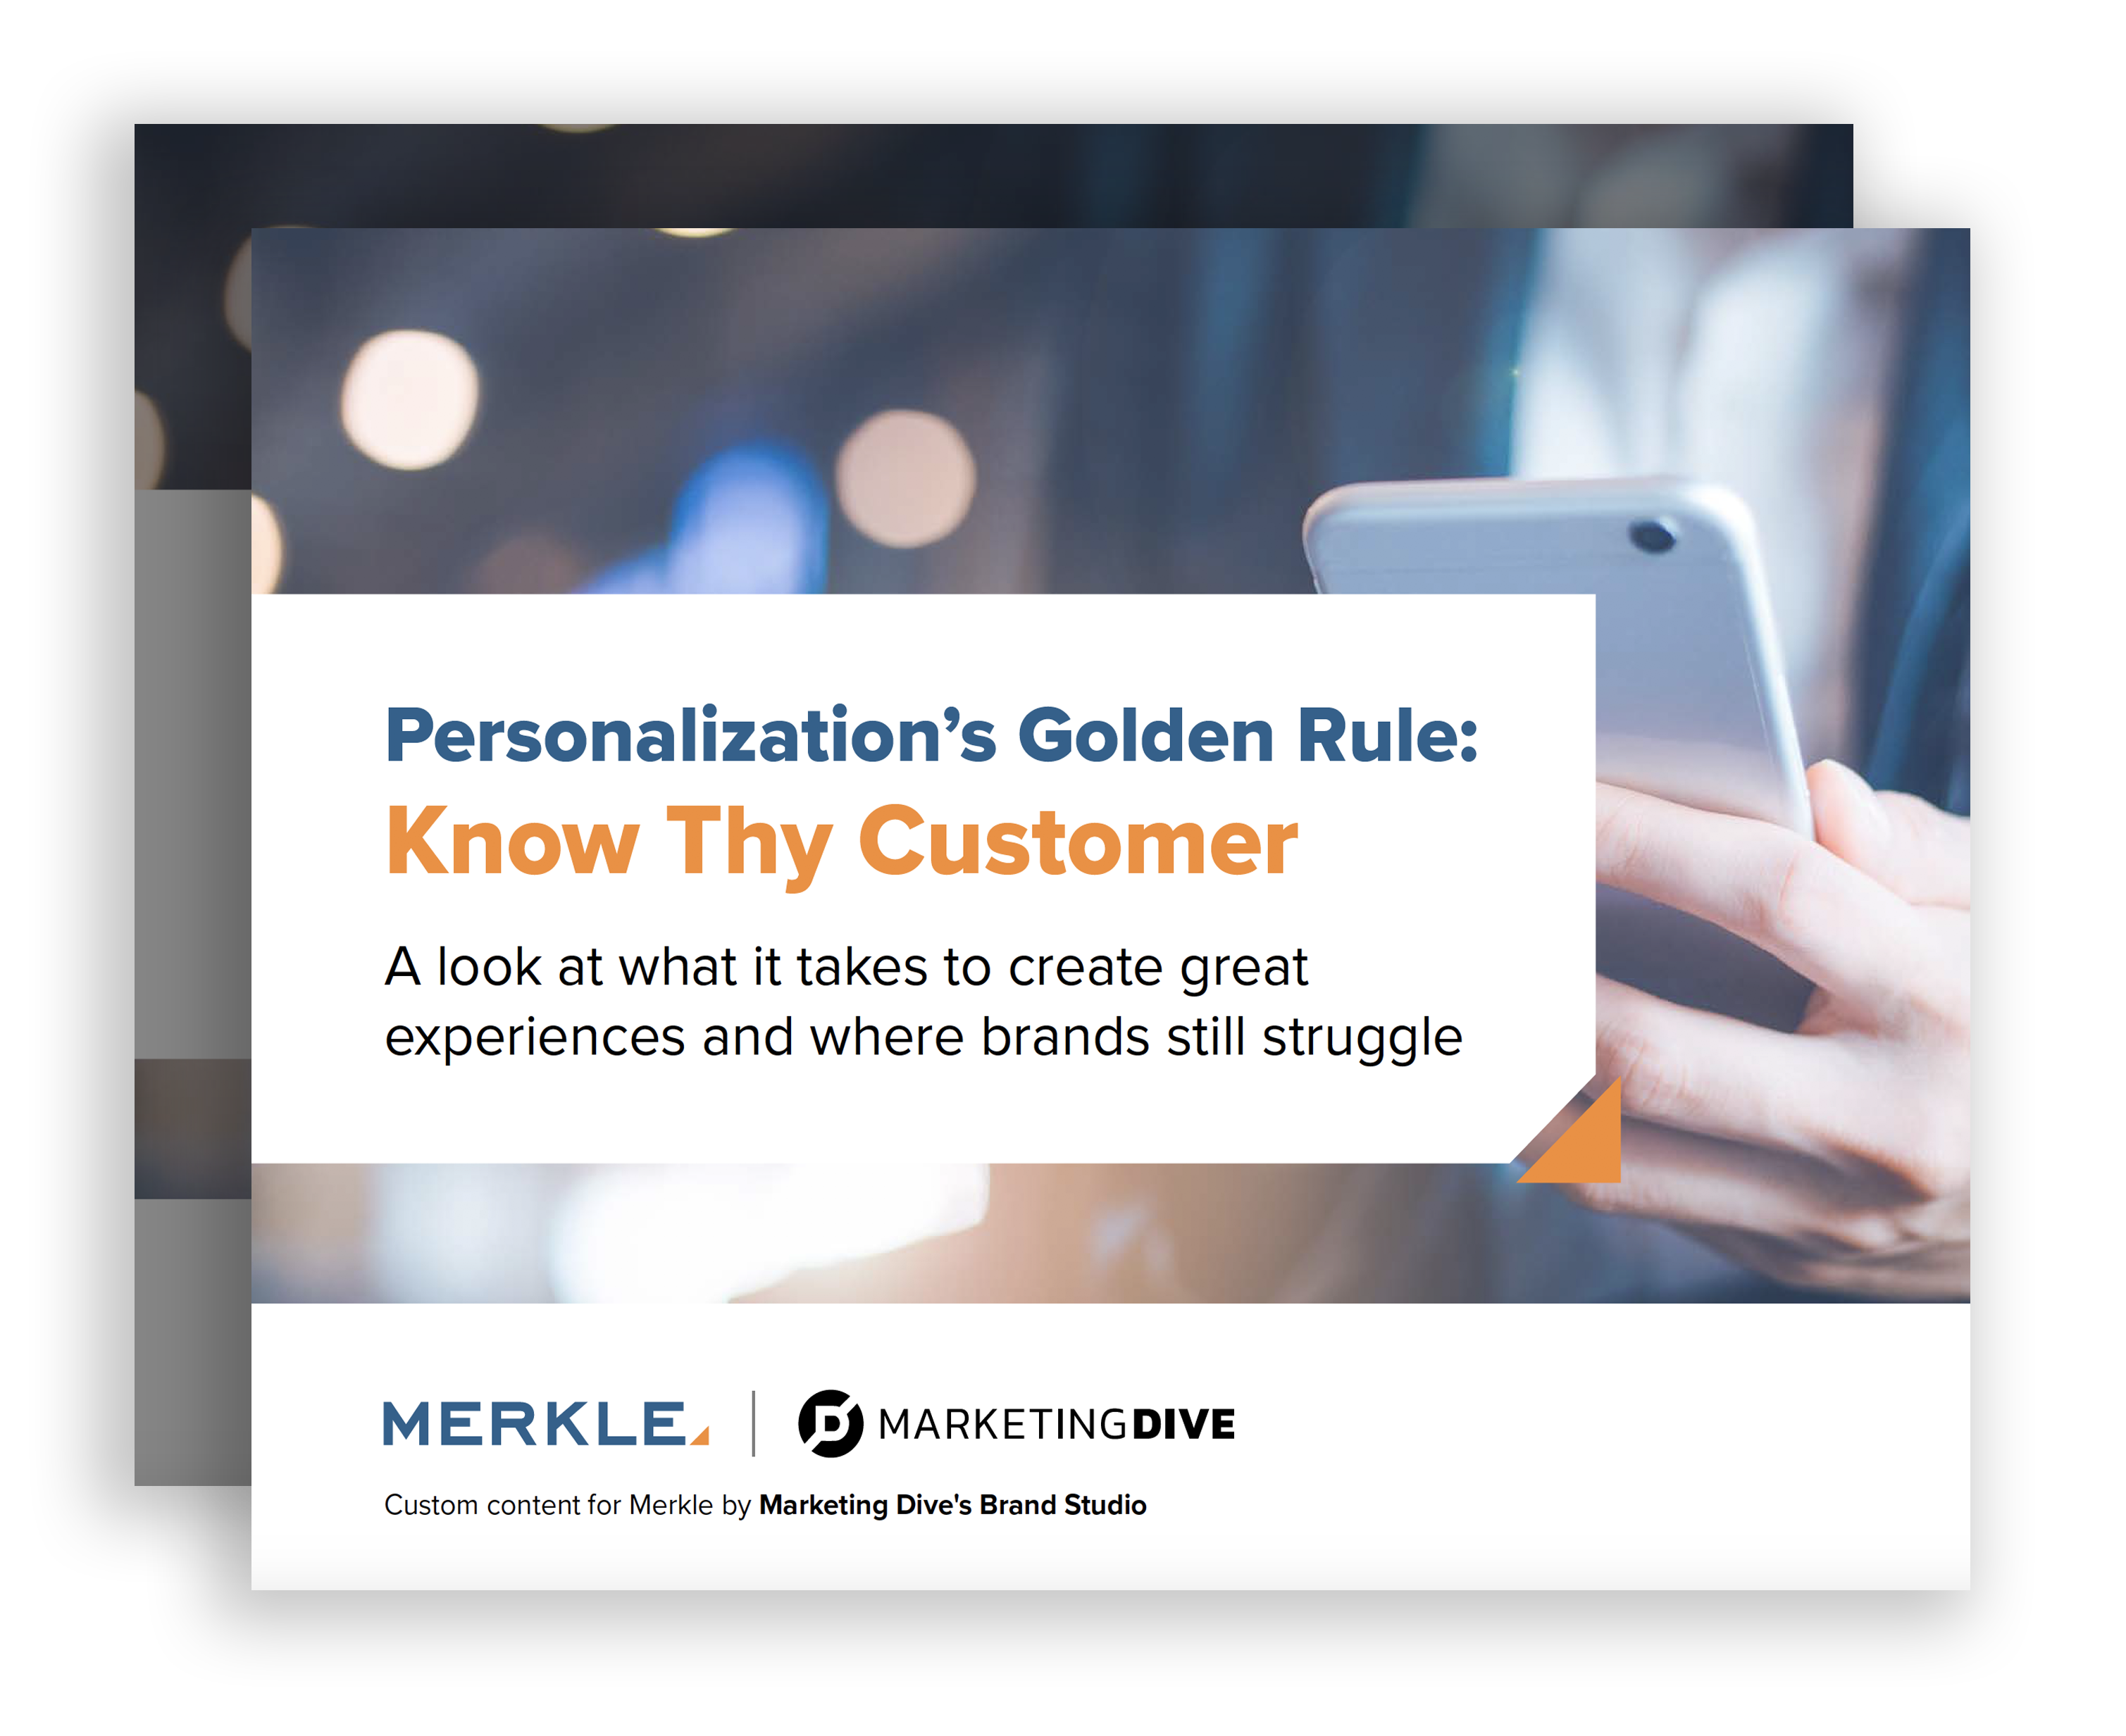 Personalization's Golden Rule: Know Thy Customer